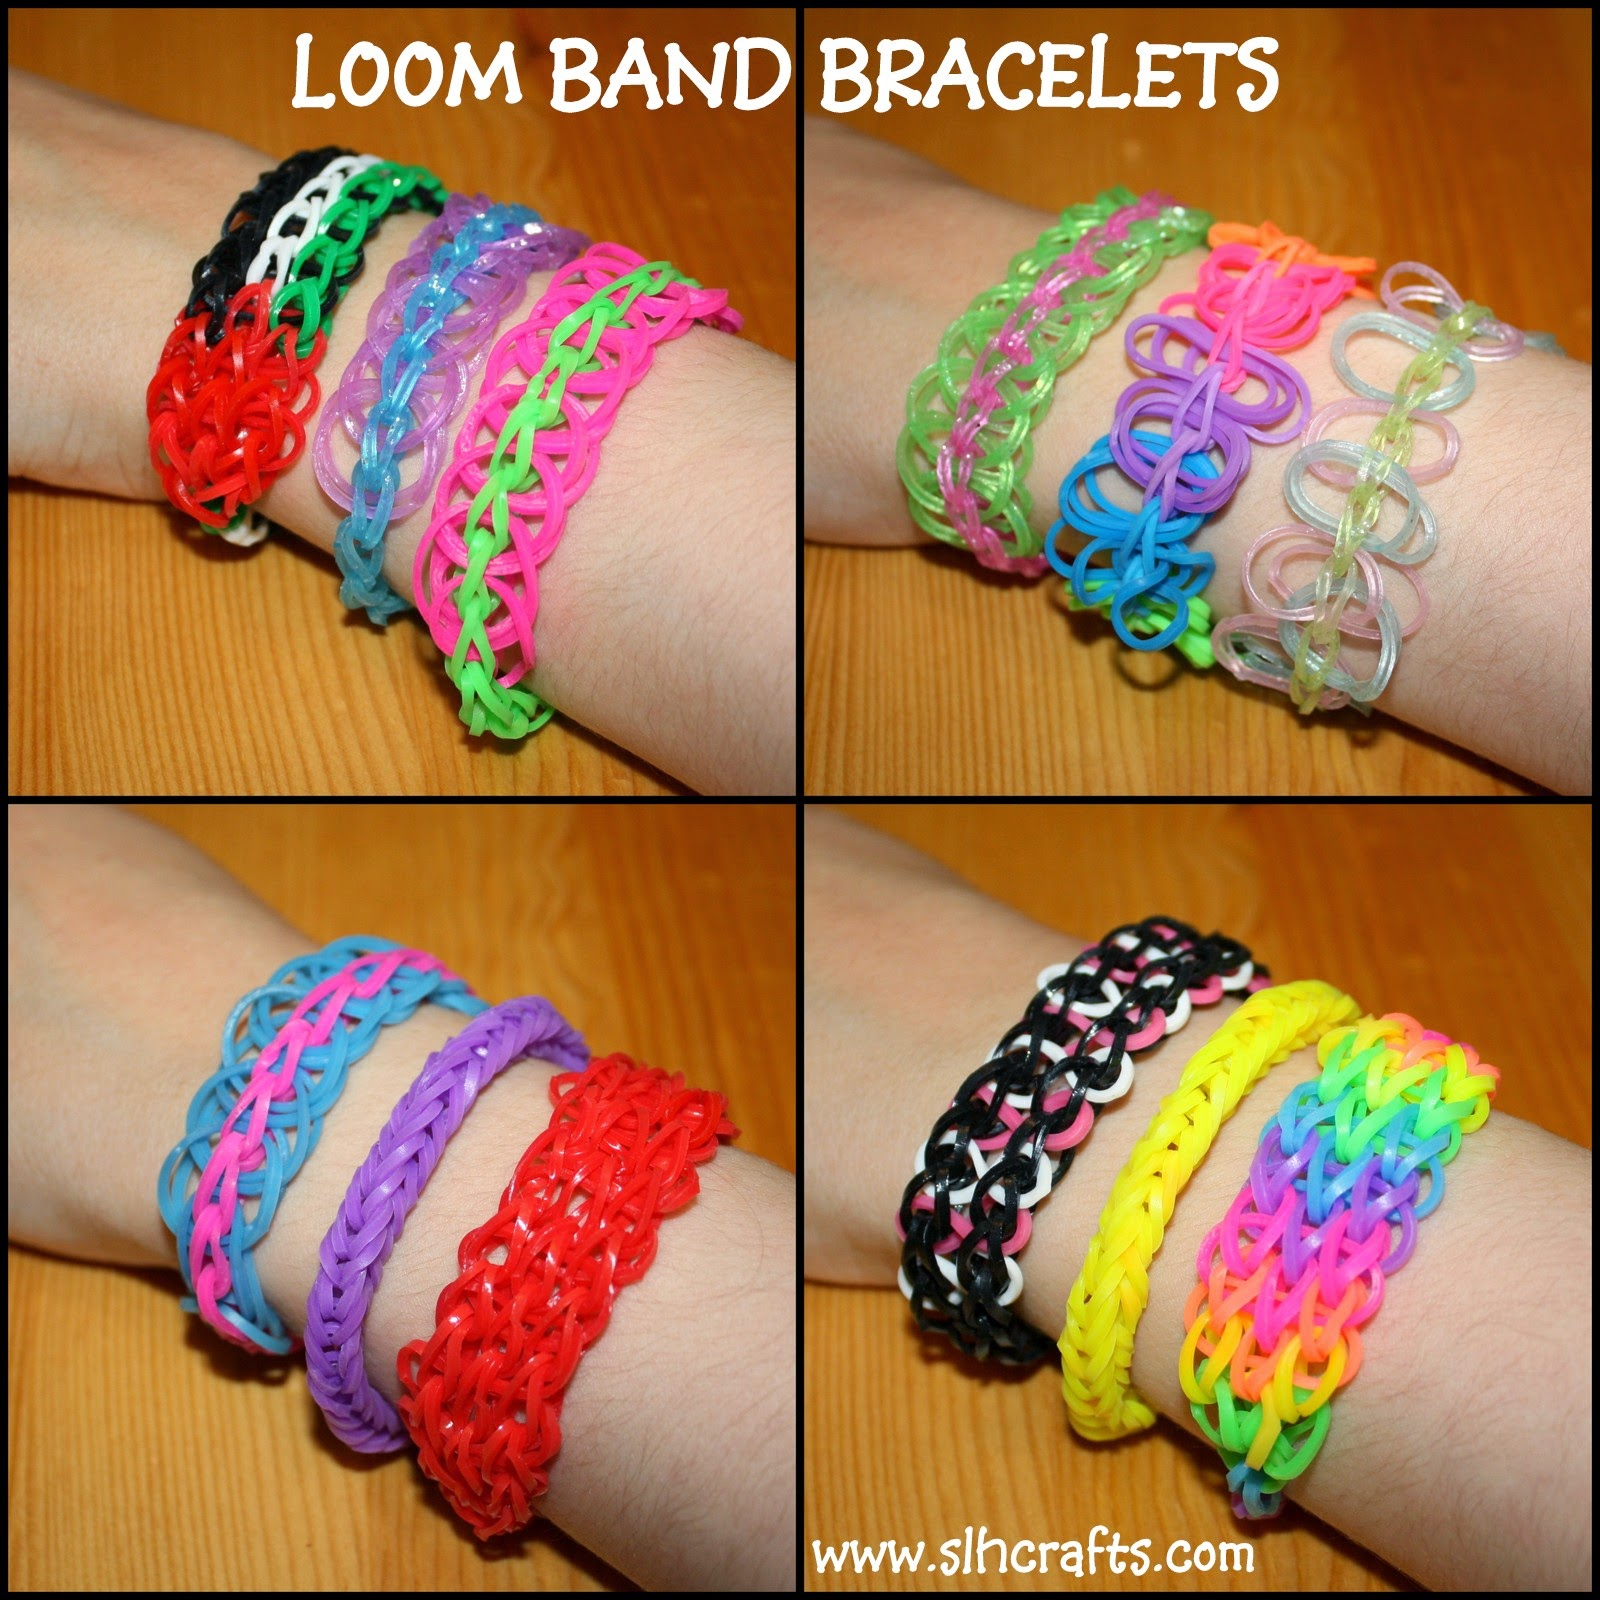 hairstyles to do with loom bands slh crafts loom band